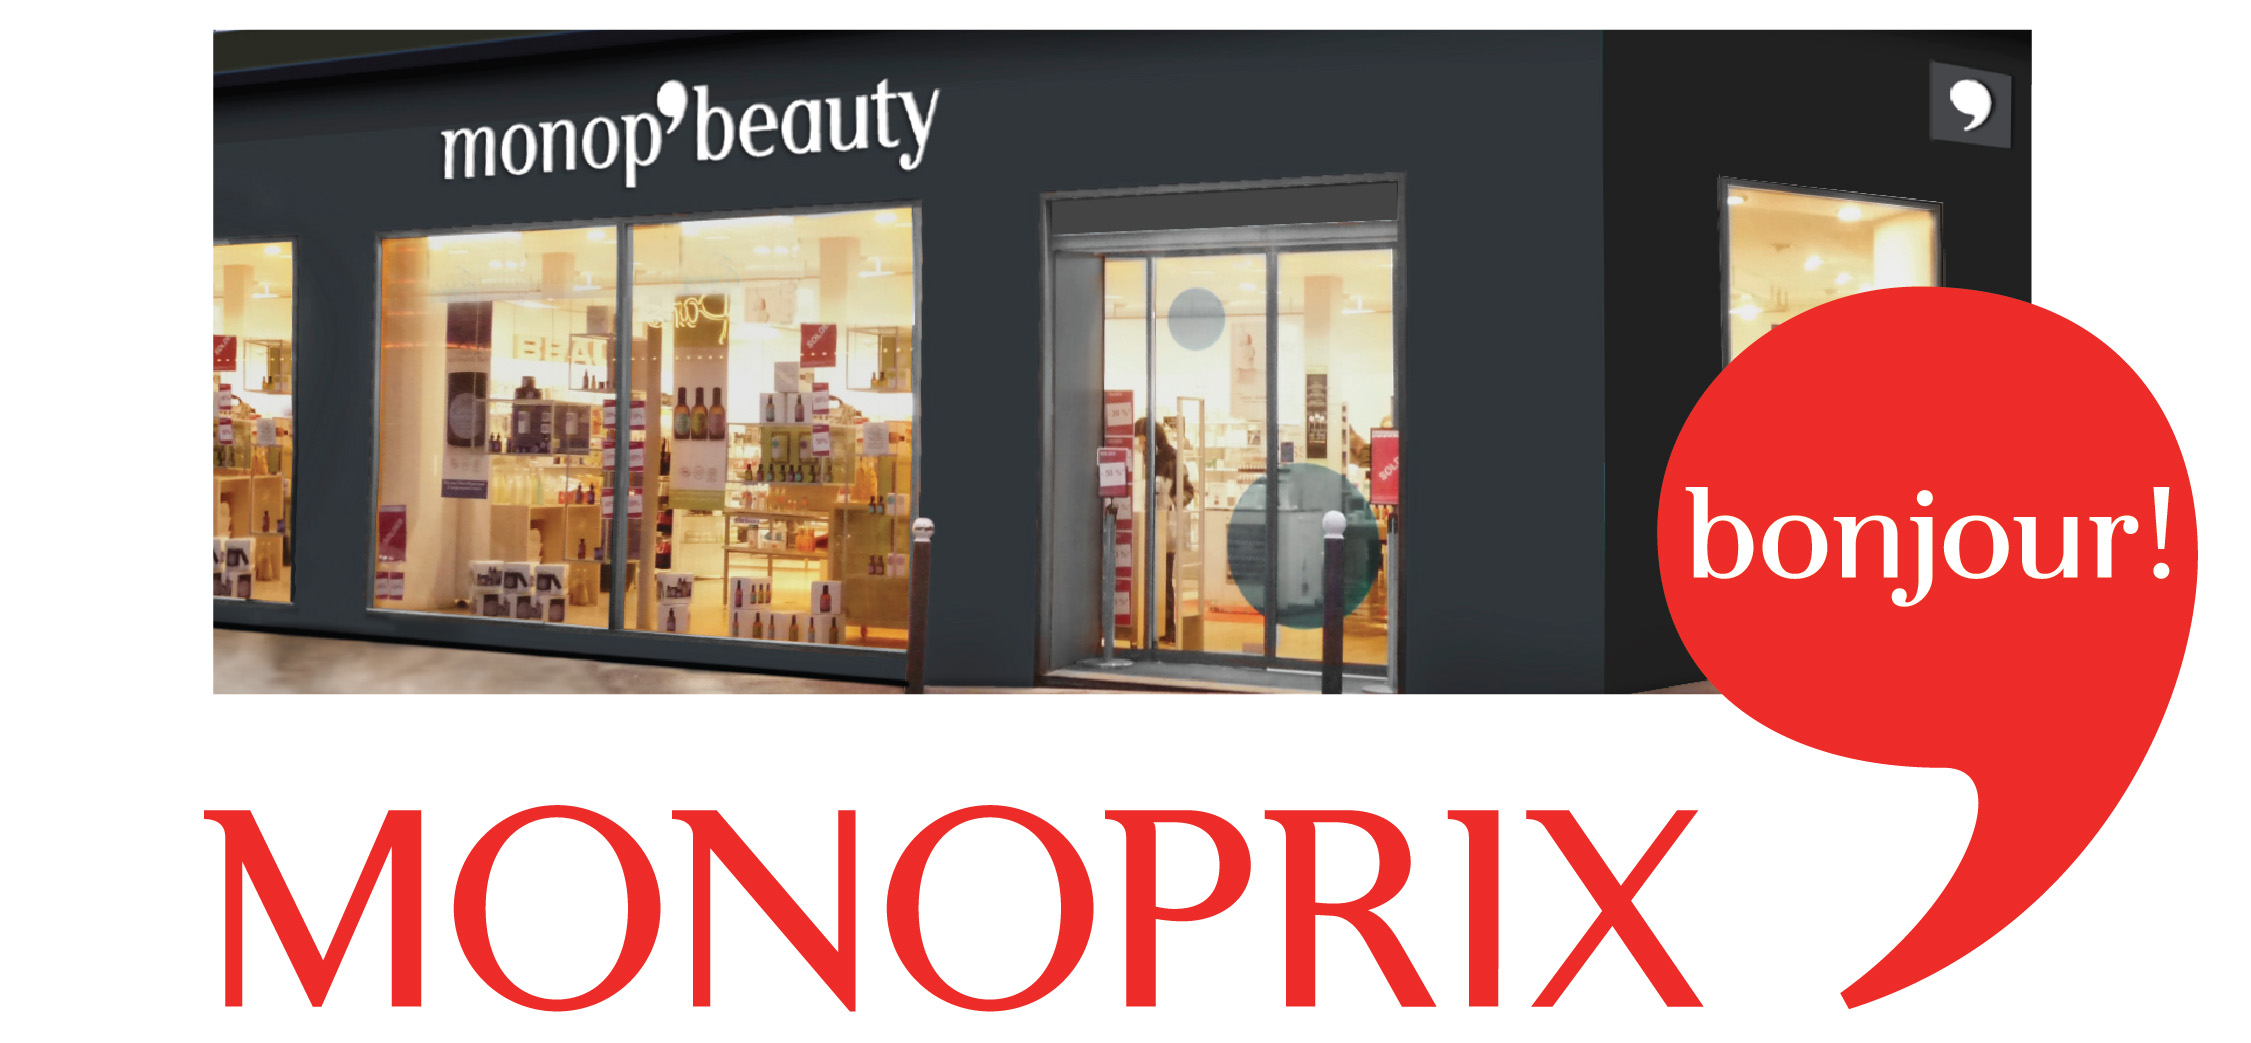 Photo: New identity of the Monoprix, a French retailer